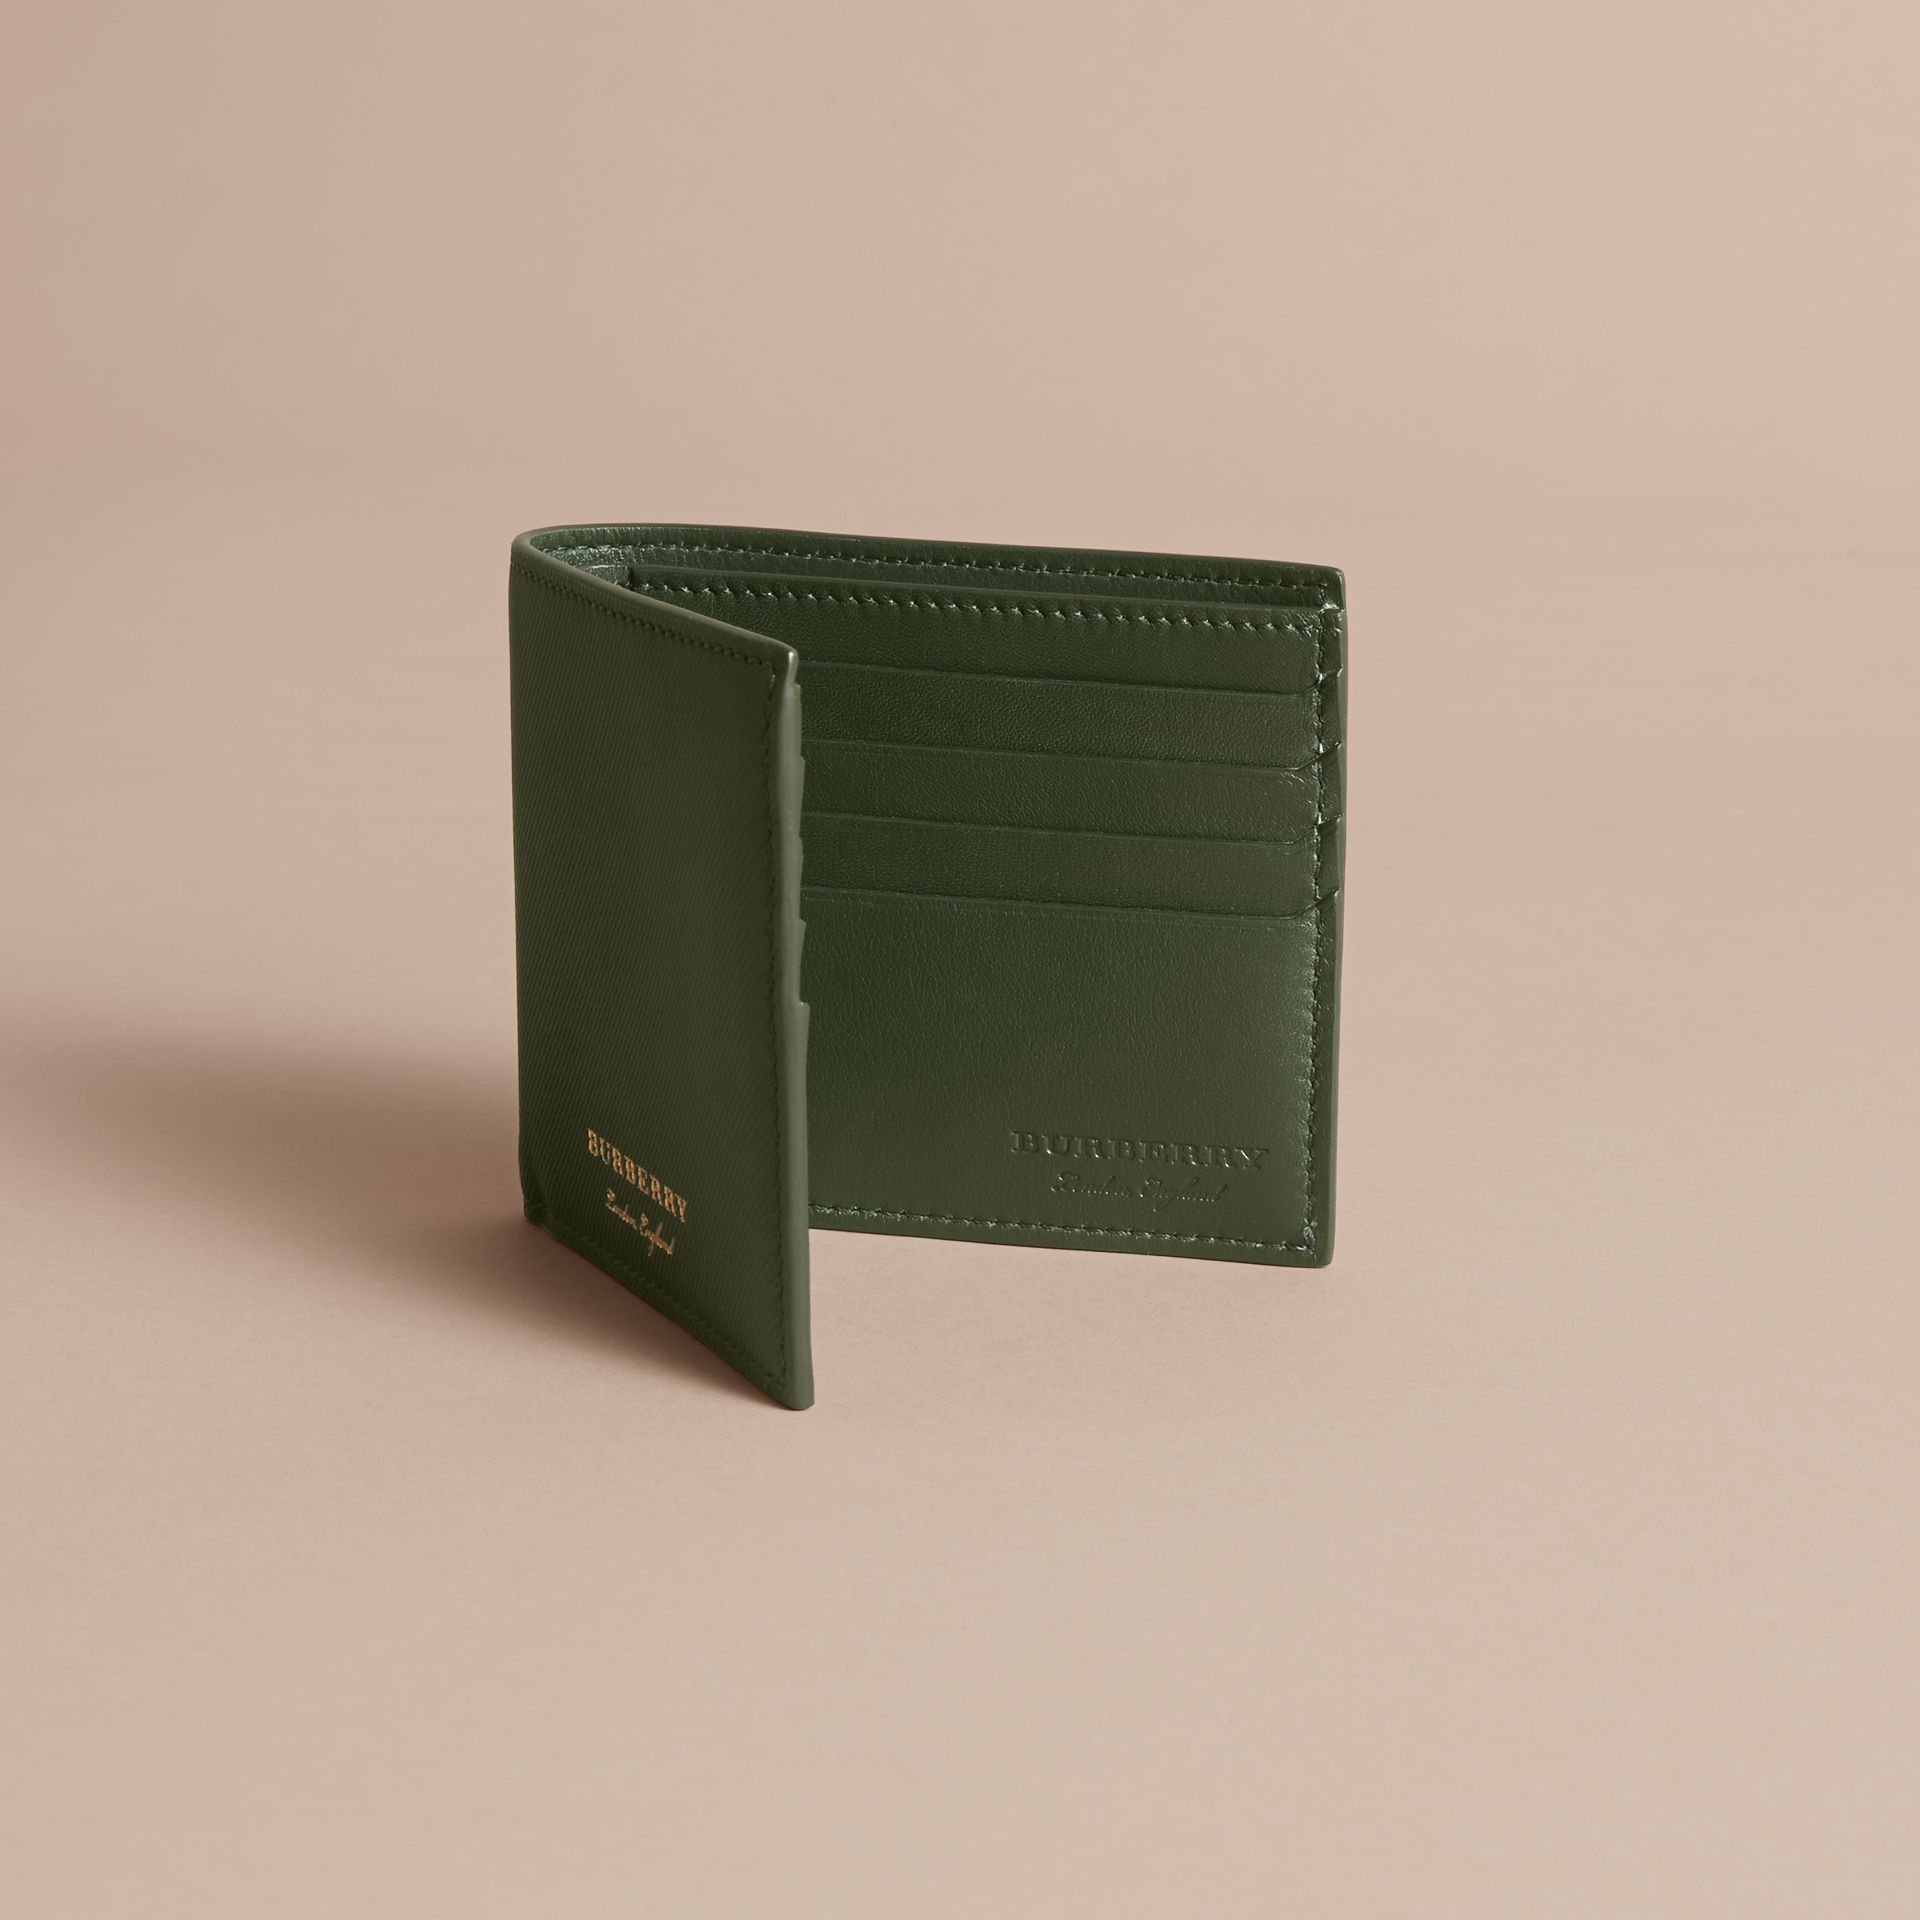 Trench Leather International Bifold Wallet in Dark Forest Green - Men | Burberry - gallery image 5